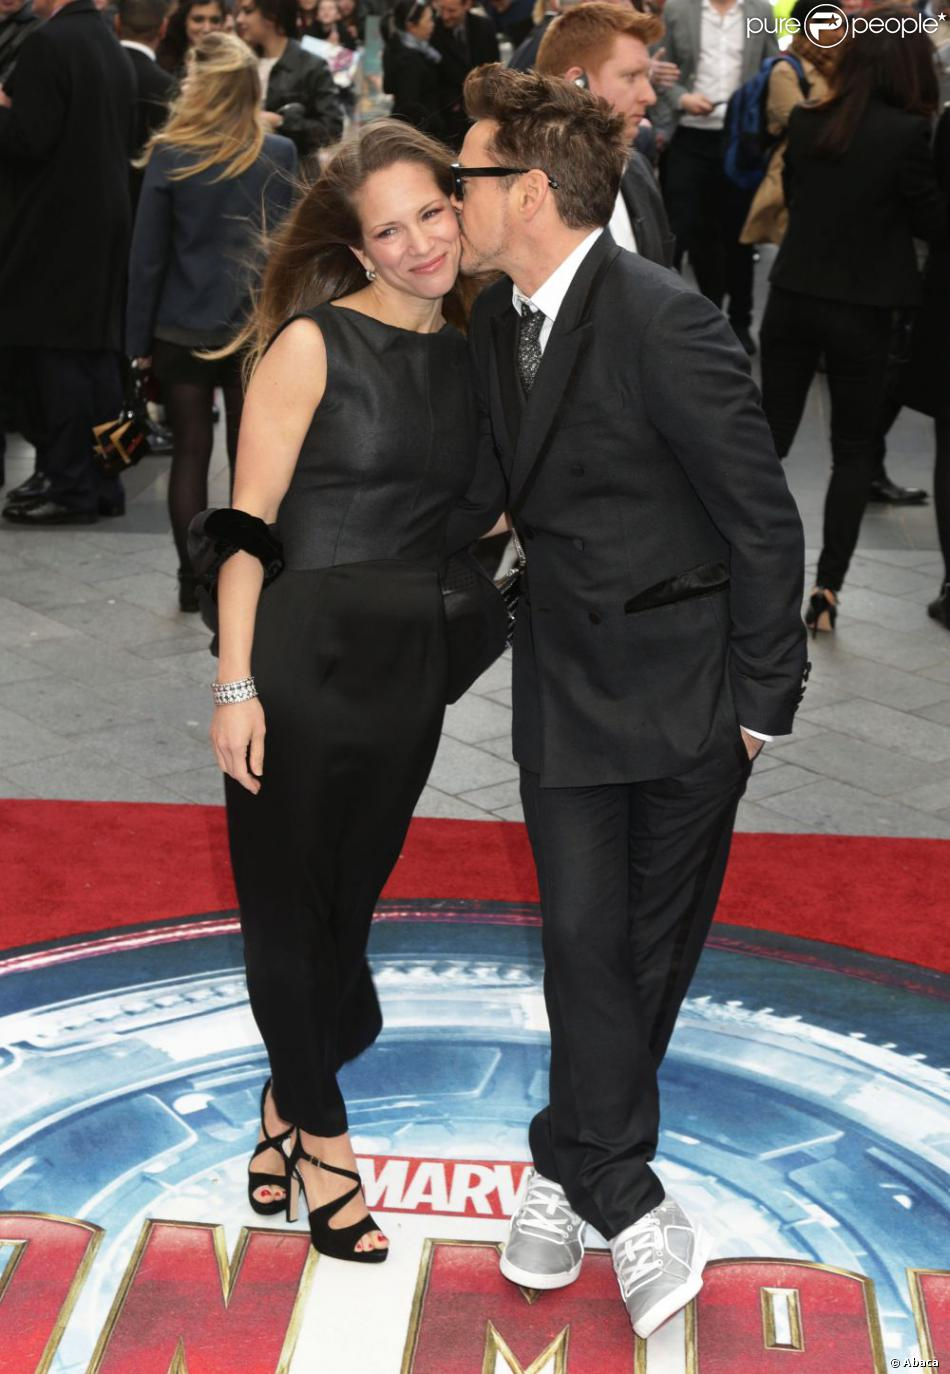 Robert Downey Jr. et sa femme Susan Downey à la première d'Iron Man 3 à l'Odeon Leicester Square, Londres, le 18 avril 2013.